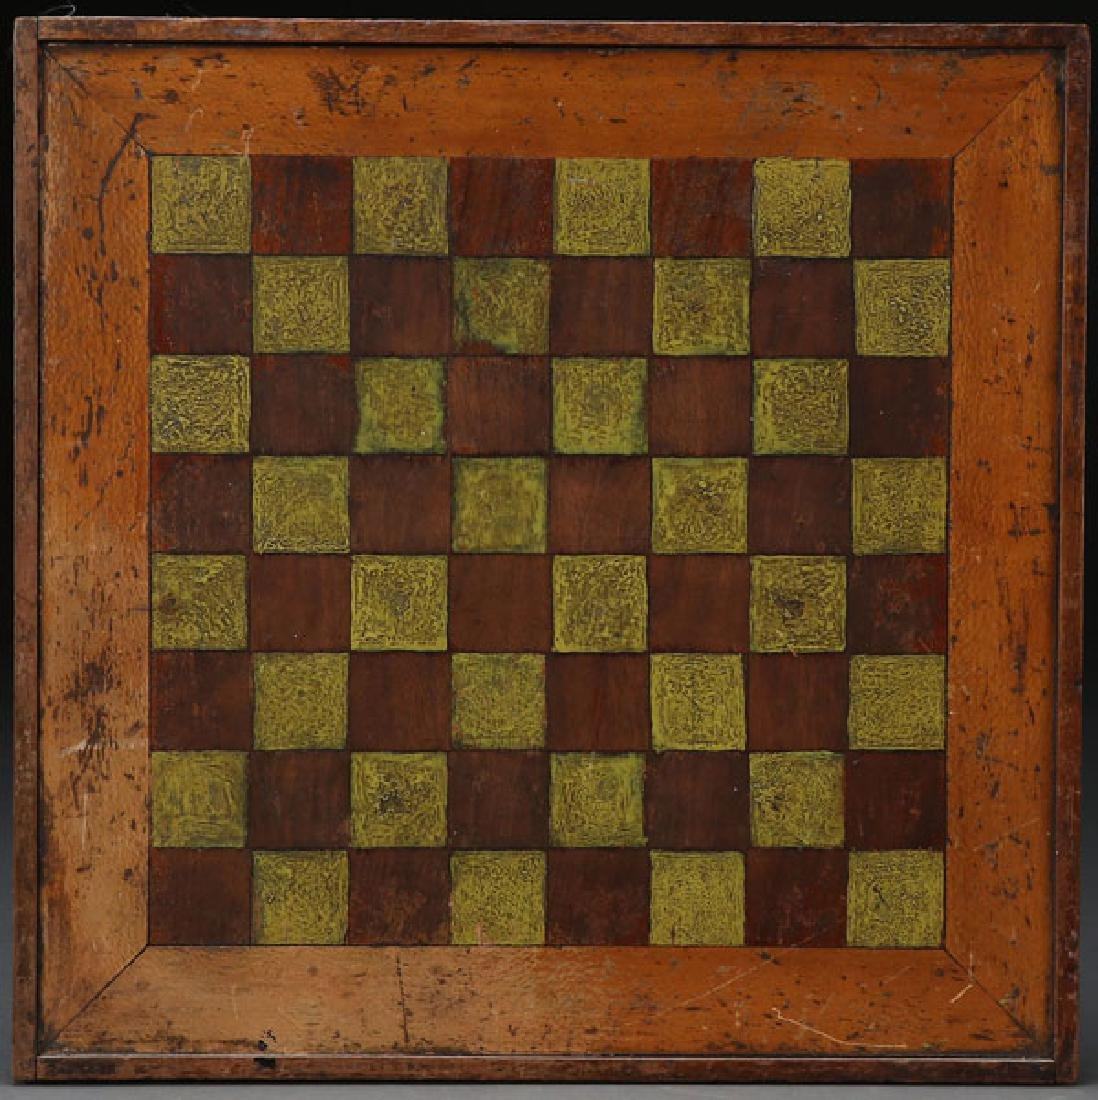 AN AMERICAN PAINTED WOOD GAMEBOARD